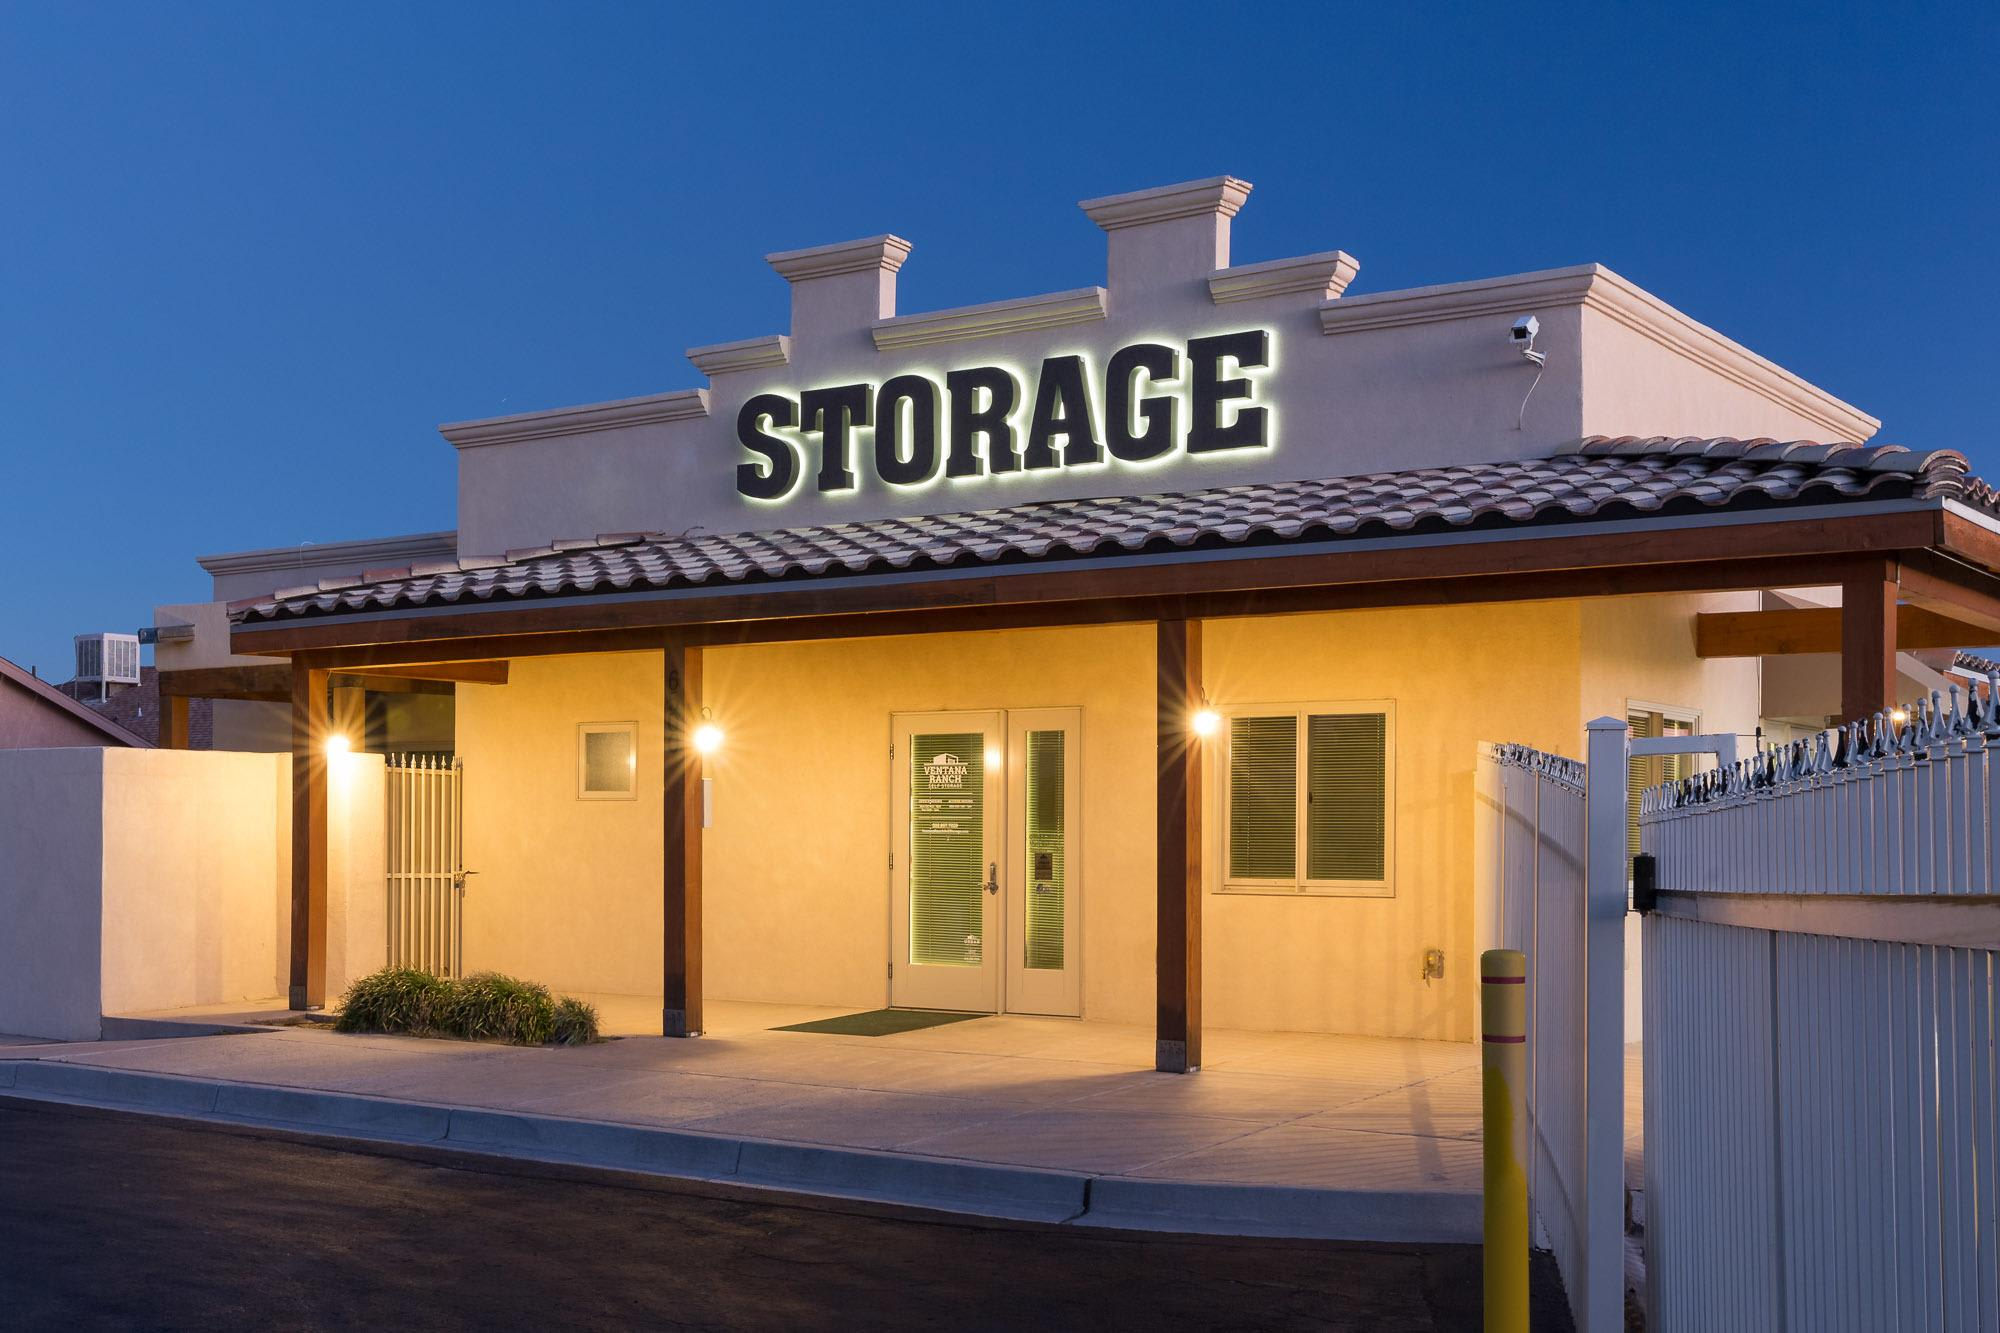 Self storage units in the Paradise Hills neighborhood of Albuquerque, NM